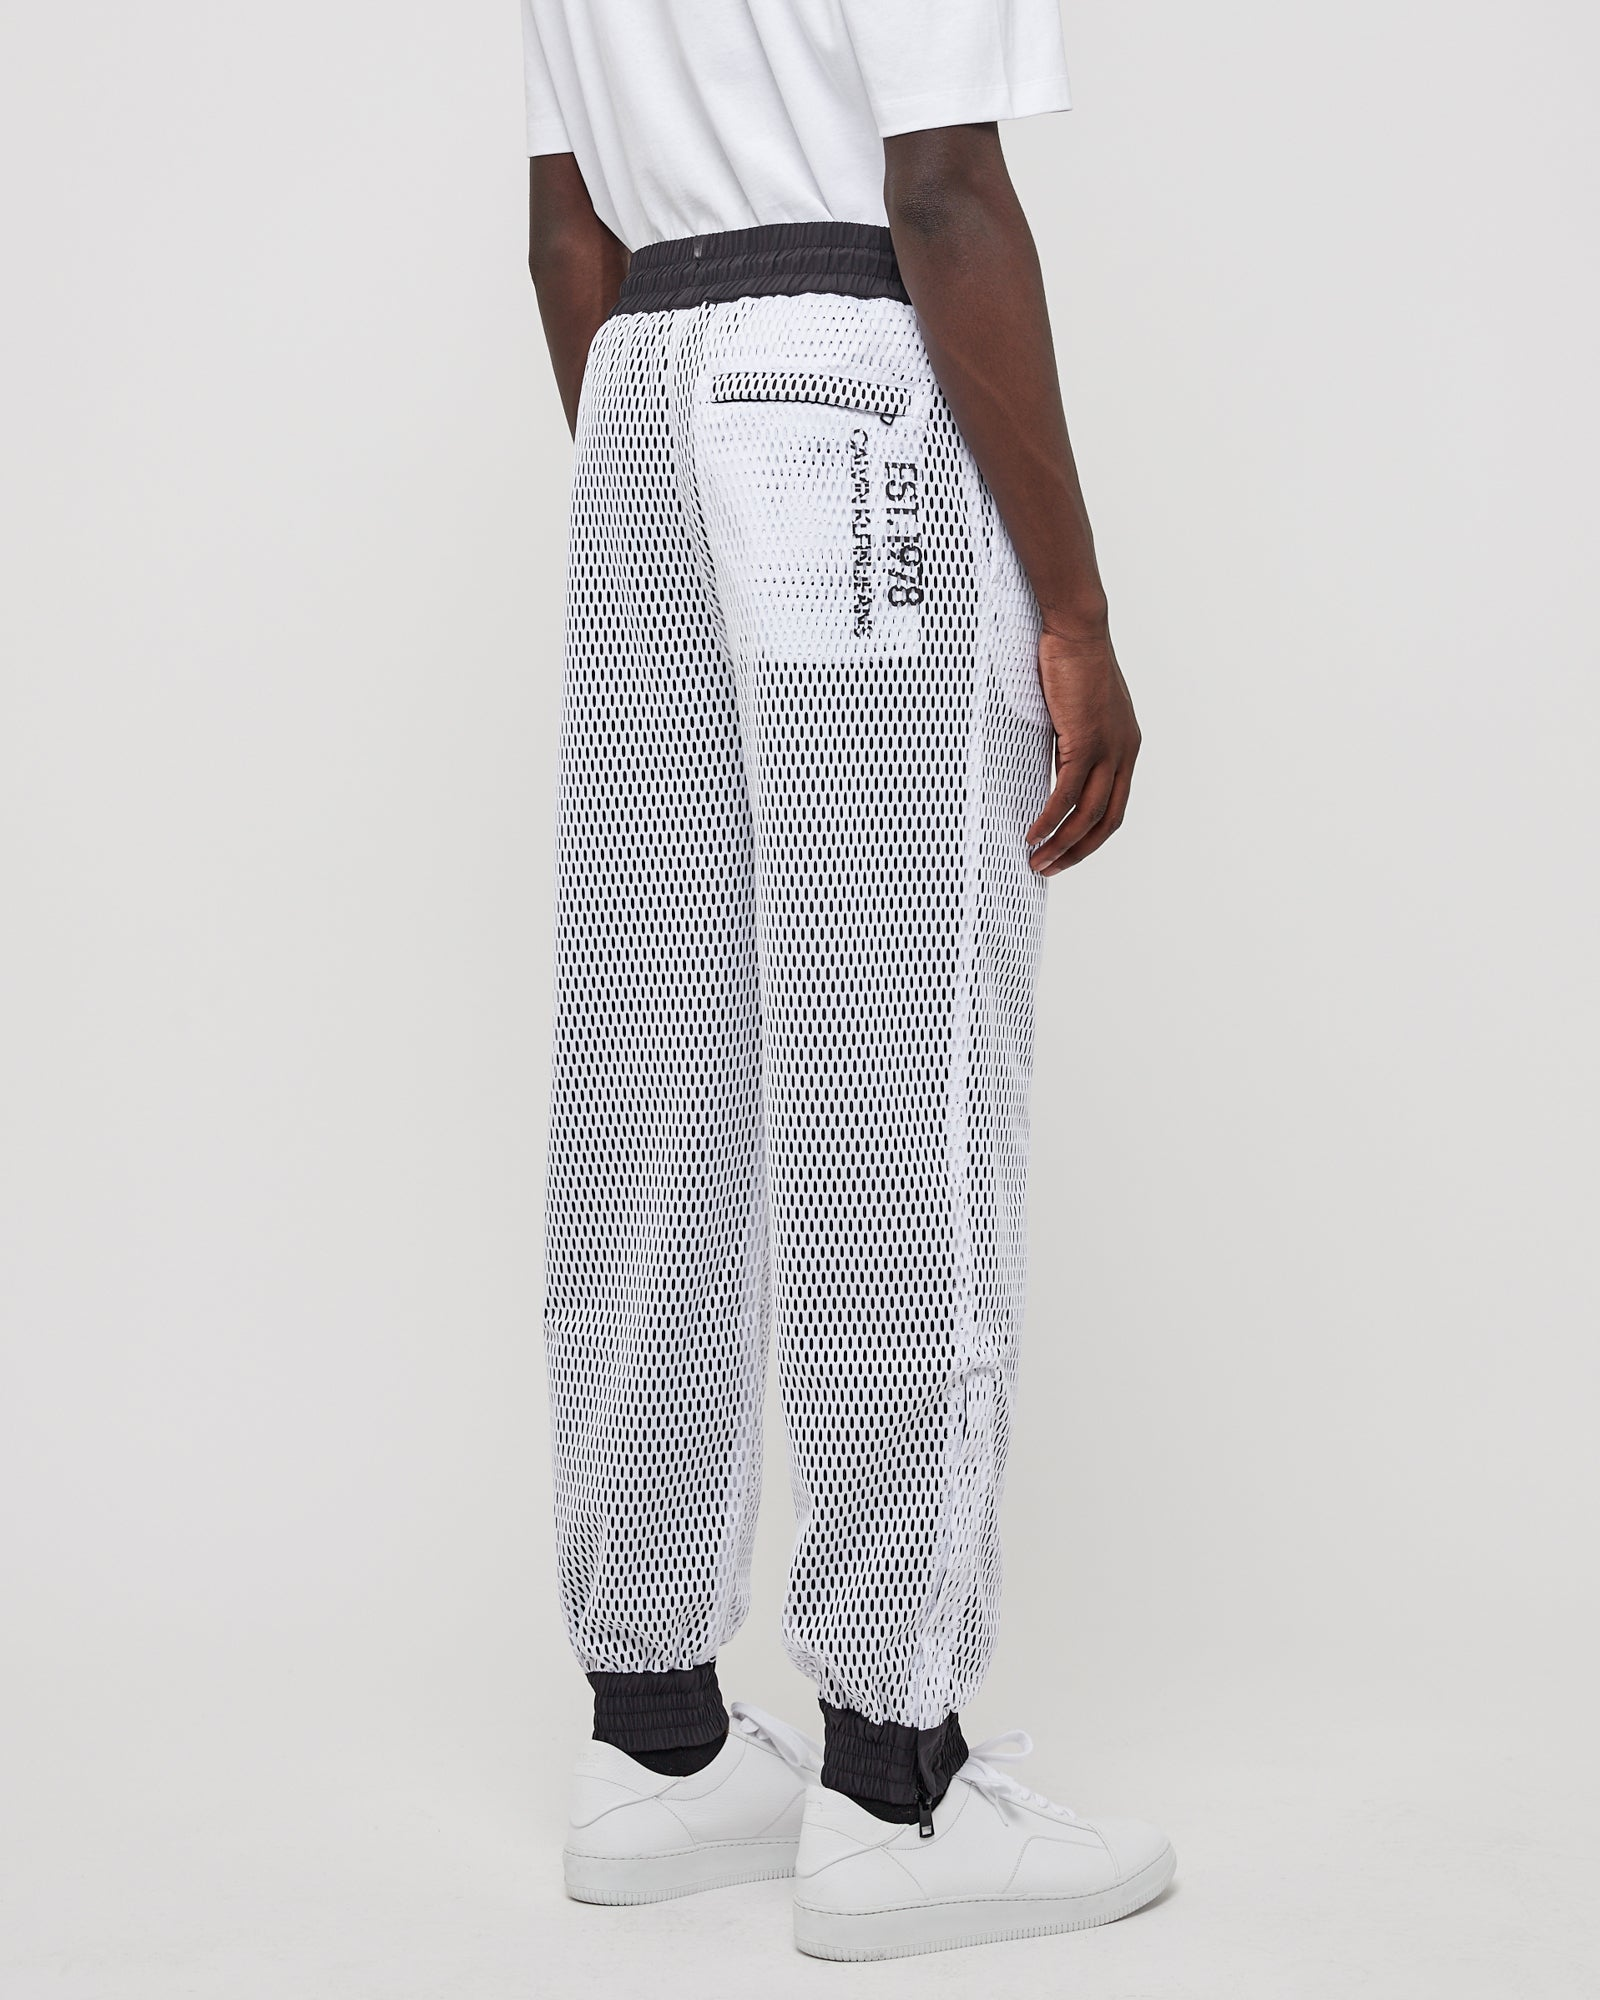 Inside Out Track Pants in Black